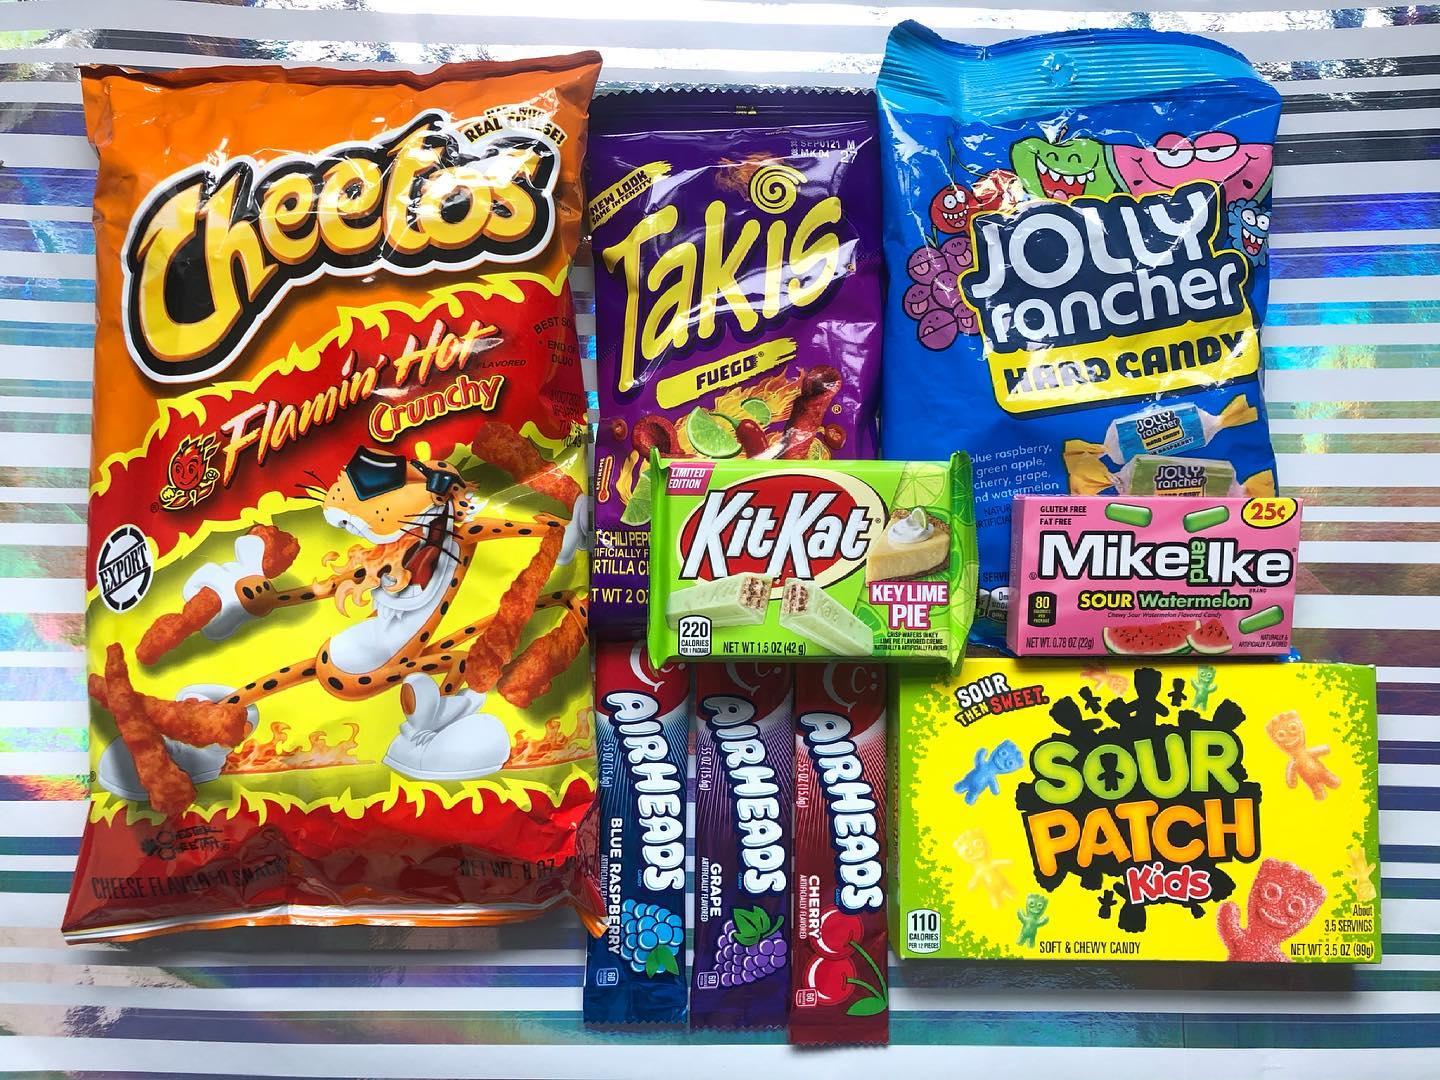 SWEETS AND TREATS: Some of the products available from Sweetie Shack